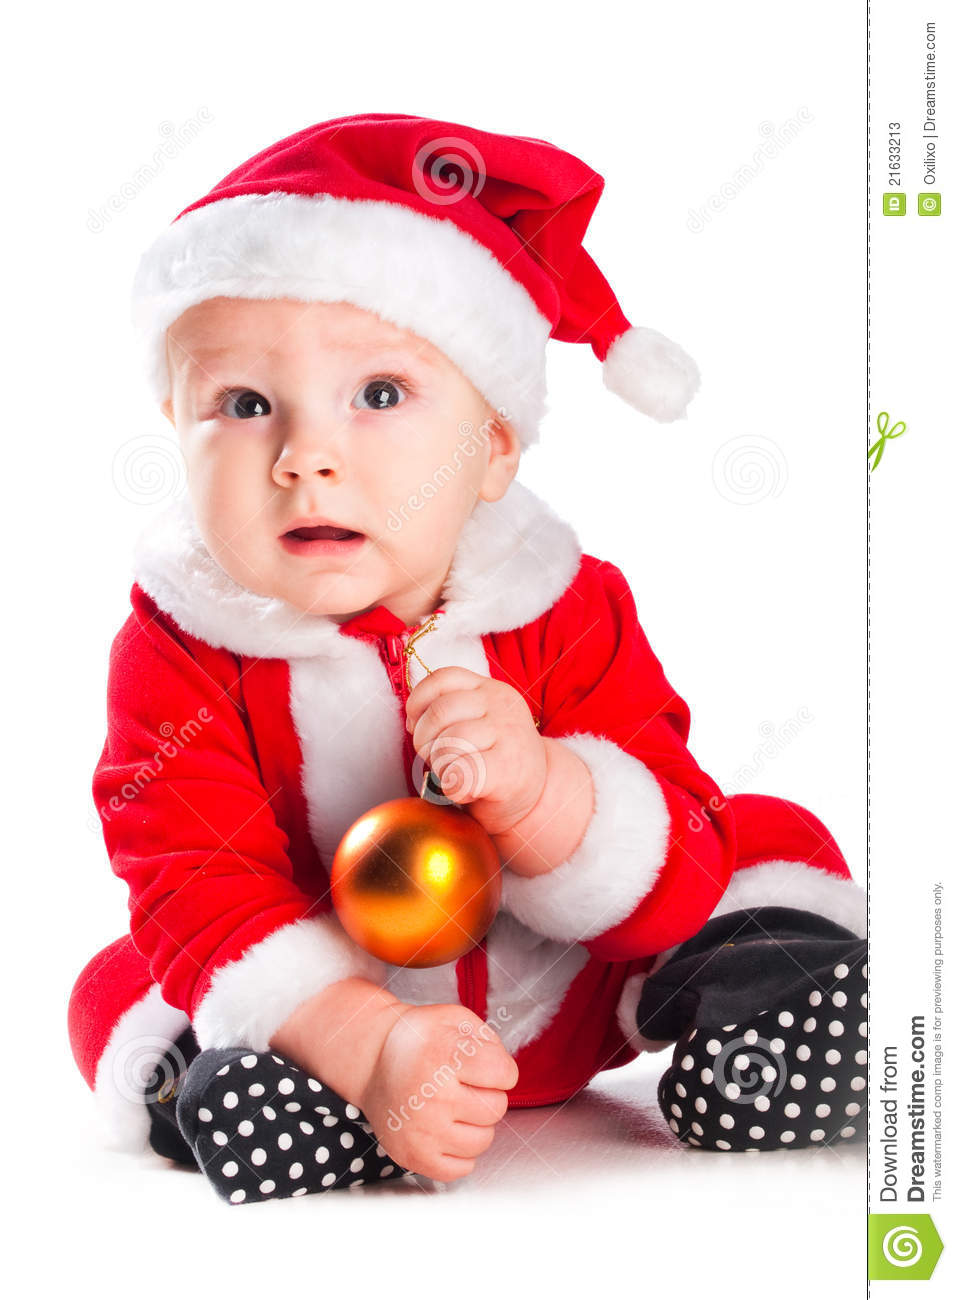 Baby Gnome: Little Cute Baby Gnome In Red With Golden Ball Stock